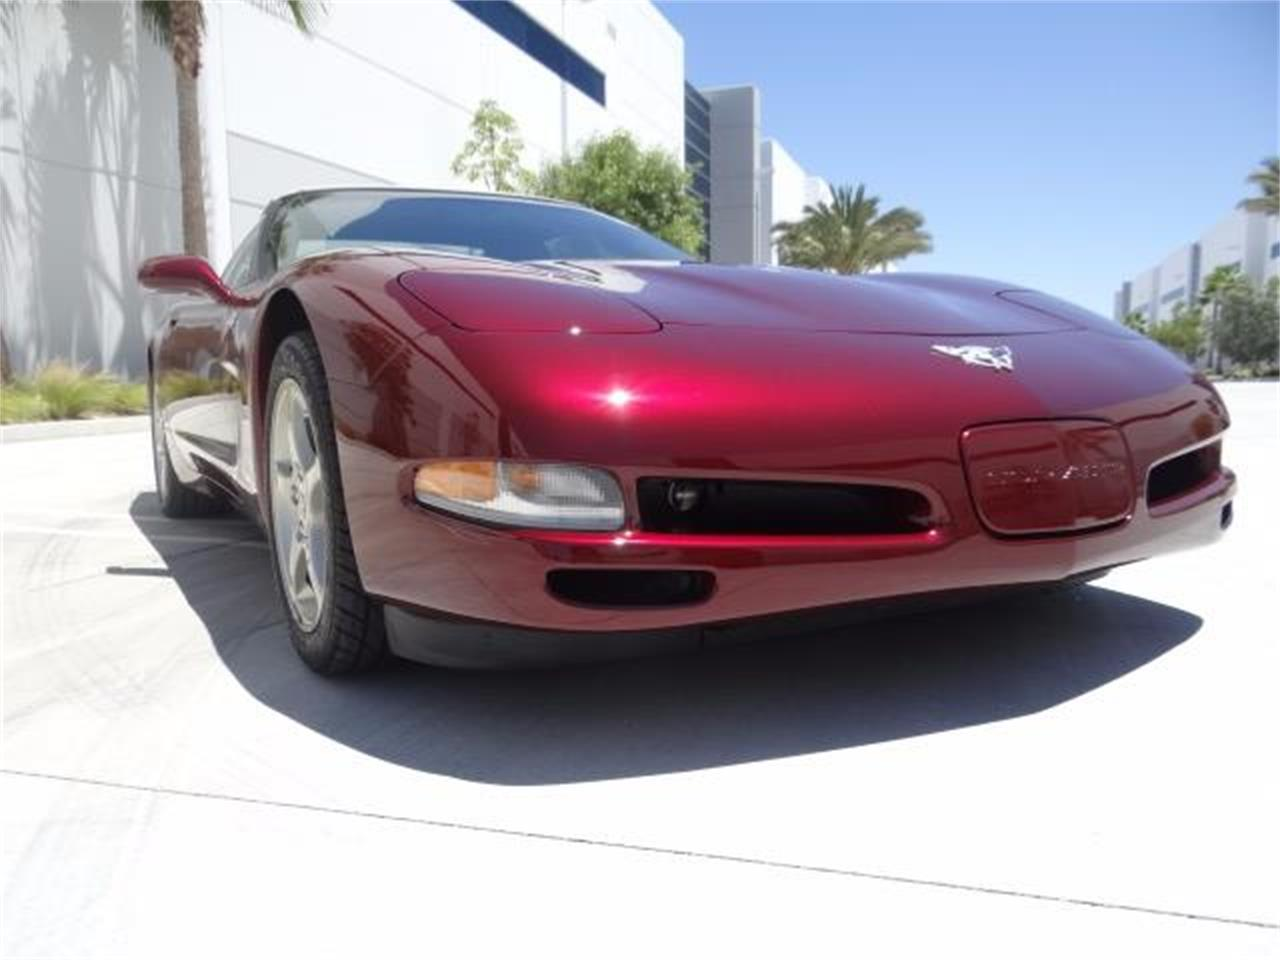 Large Picture of 2003 Chevrolet Corvette located in Anaheim California - $30,000.00 - LCV7